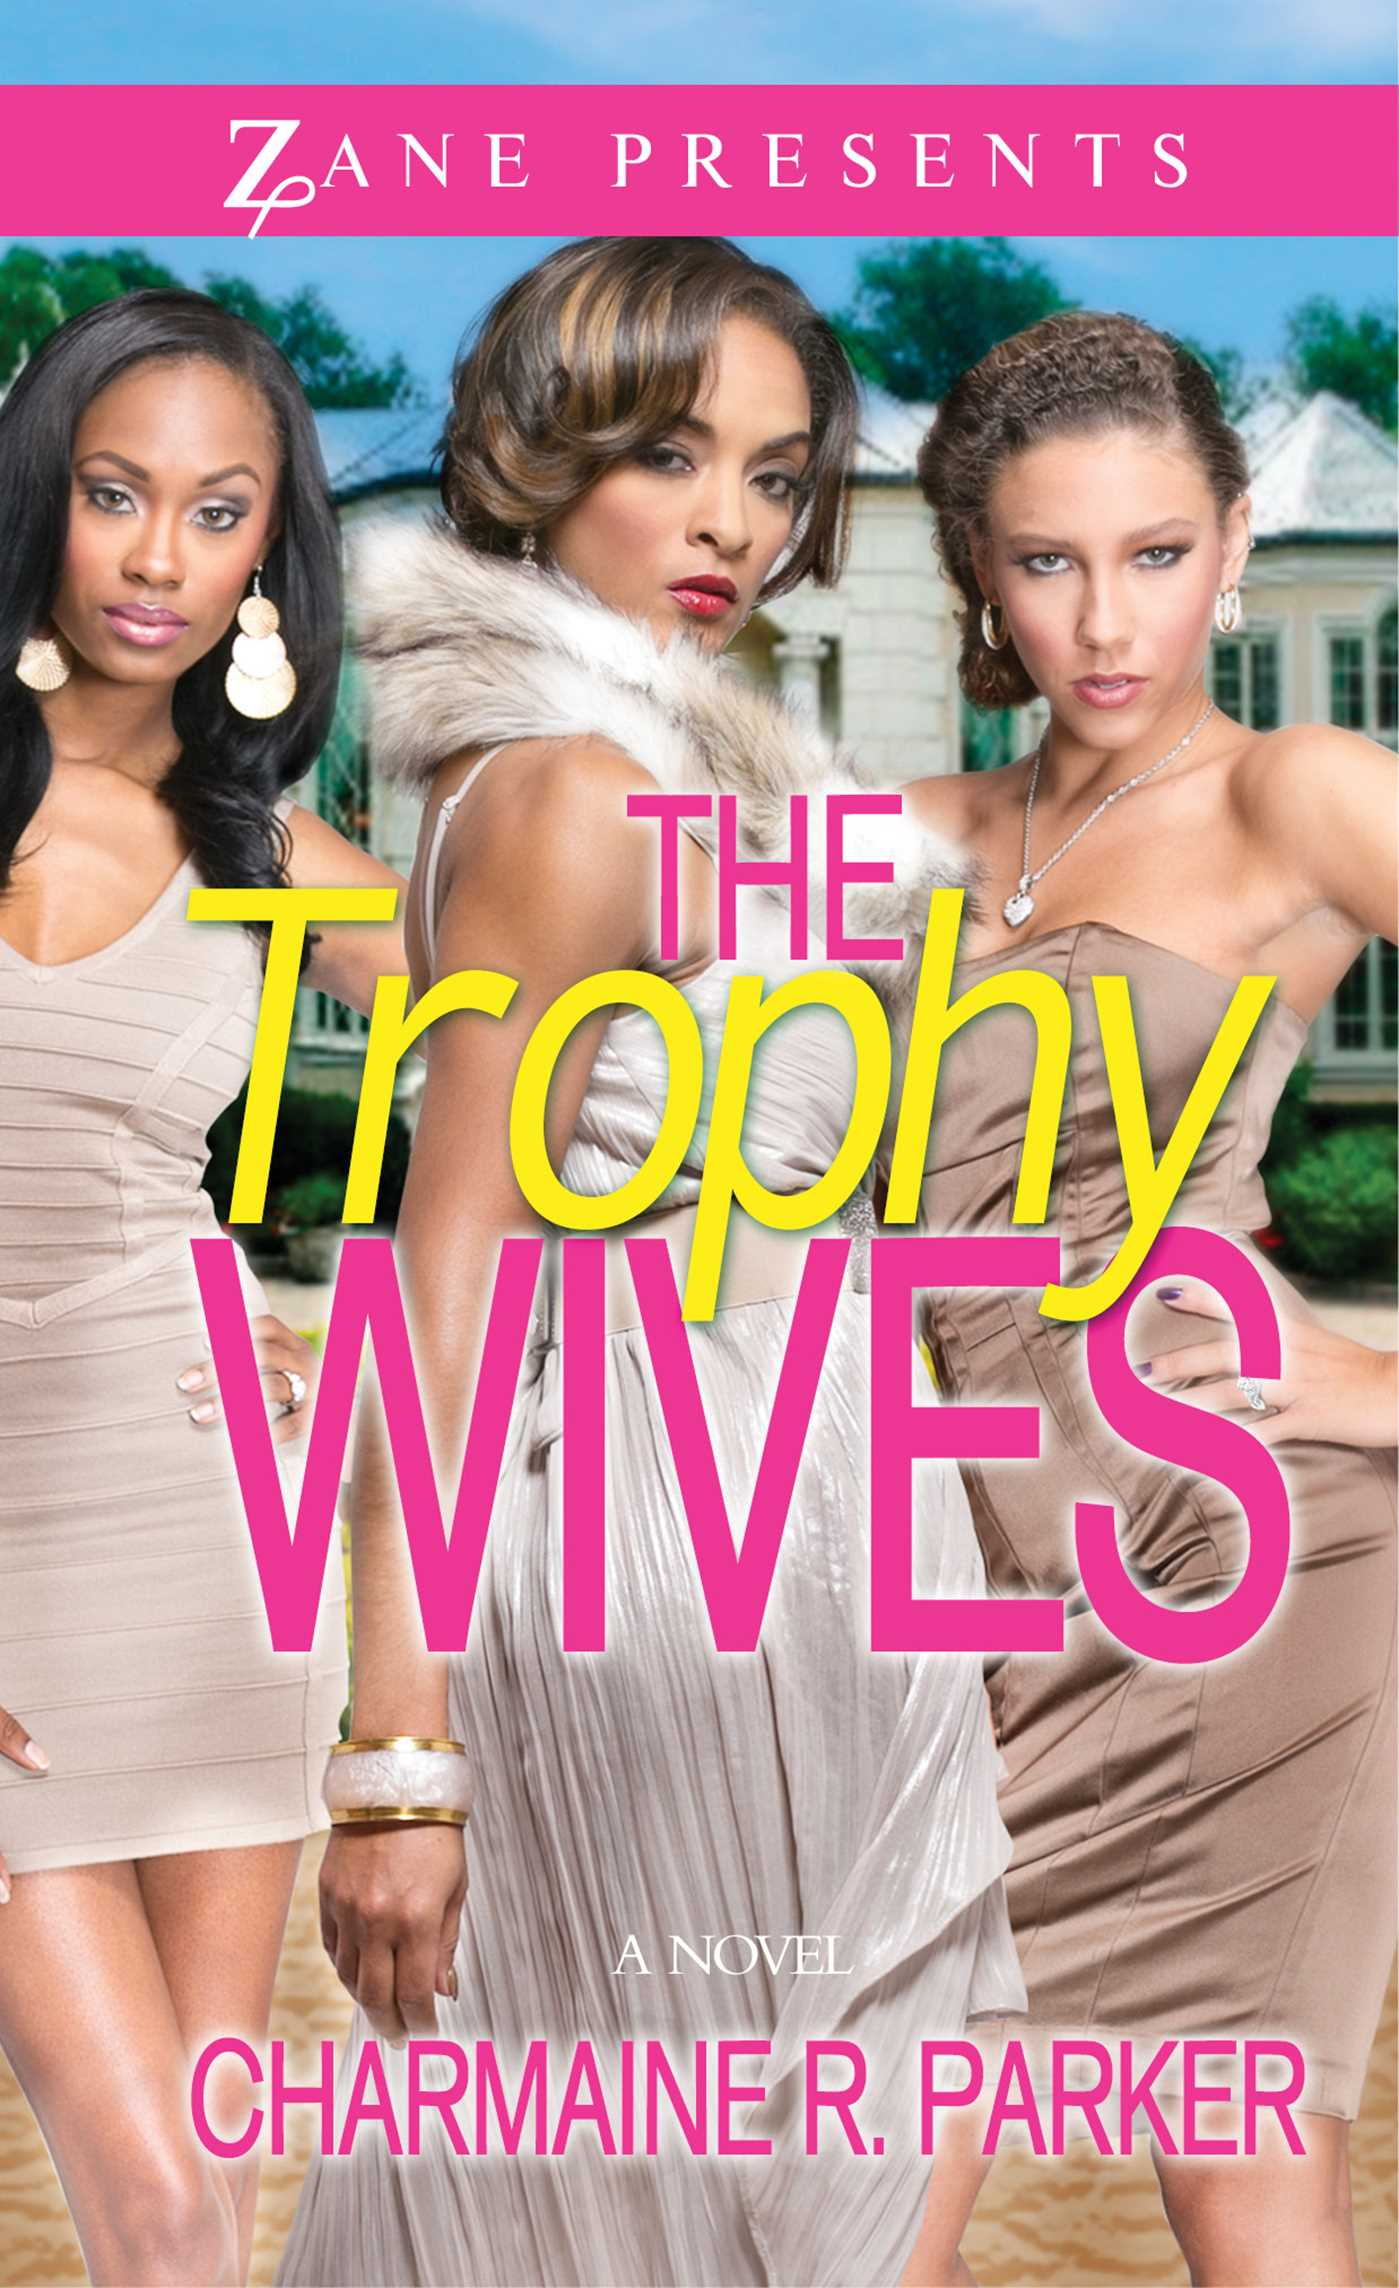 Trophy wives 9781451696554 hr